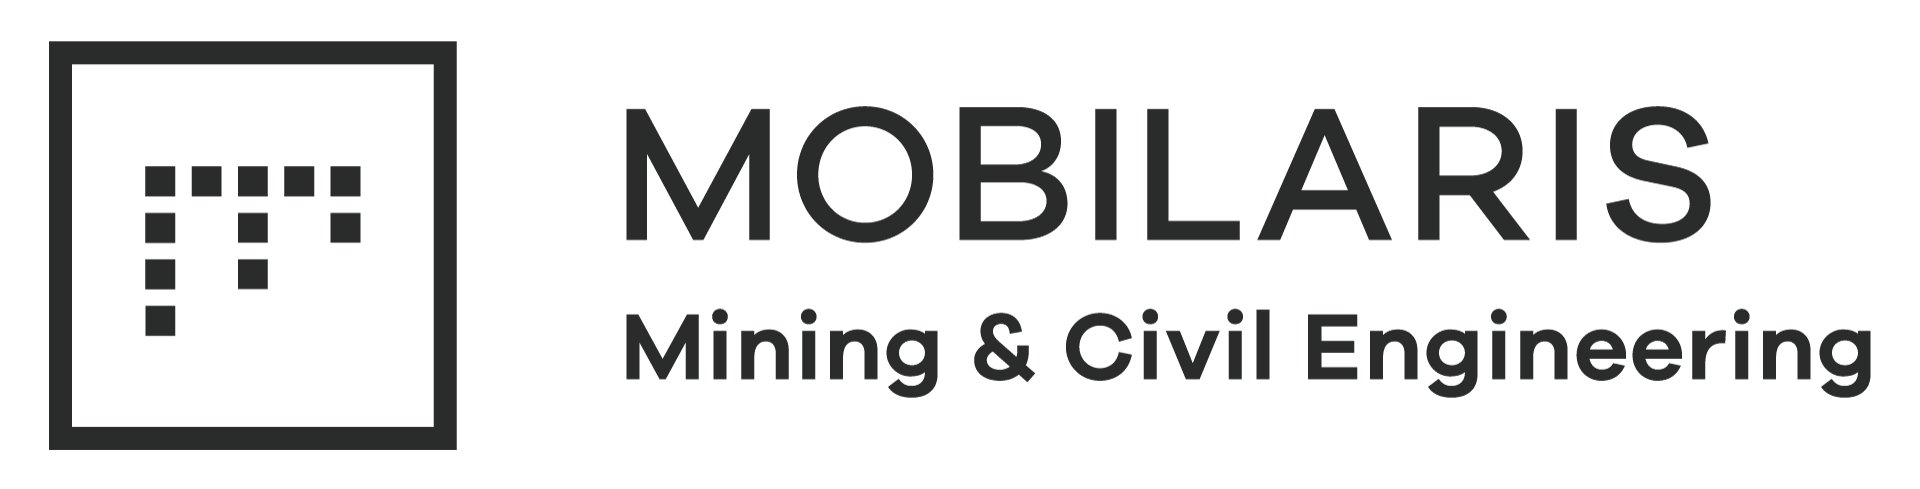 Mobilaris Onboard™ enables real-time information for everyone in the mine